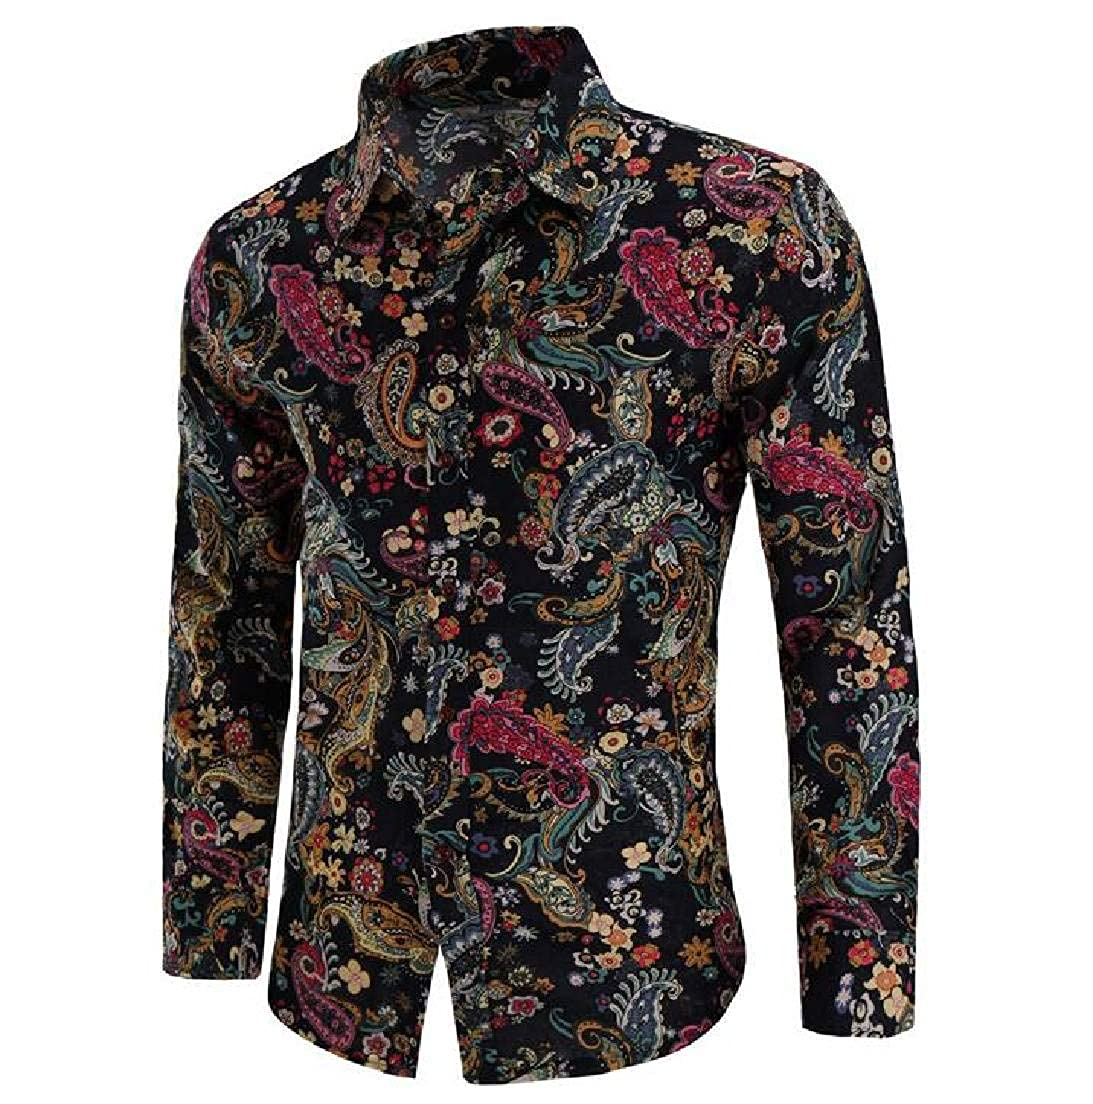 JXG Men Tops Long Sleeve Printed Big /& Tall Slim Button Up Shirts